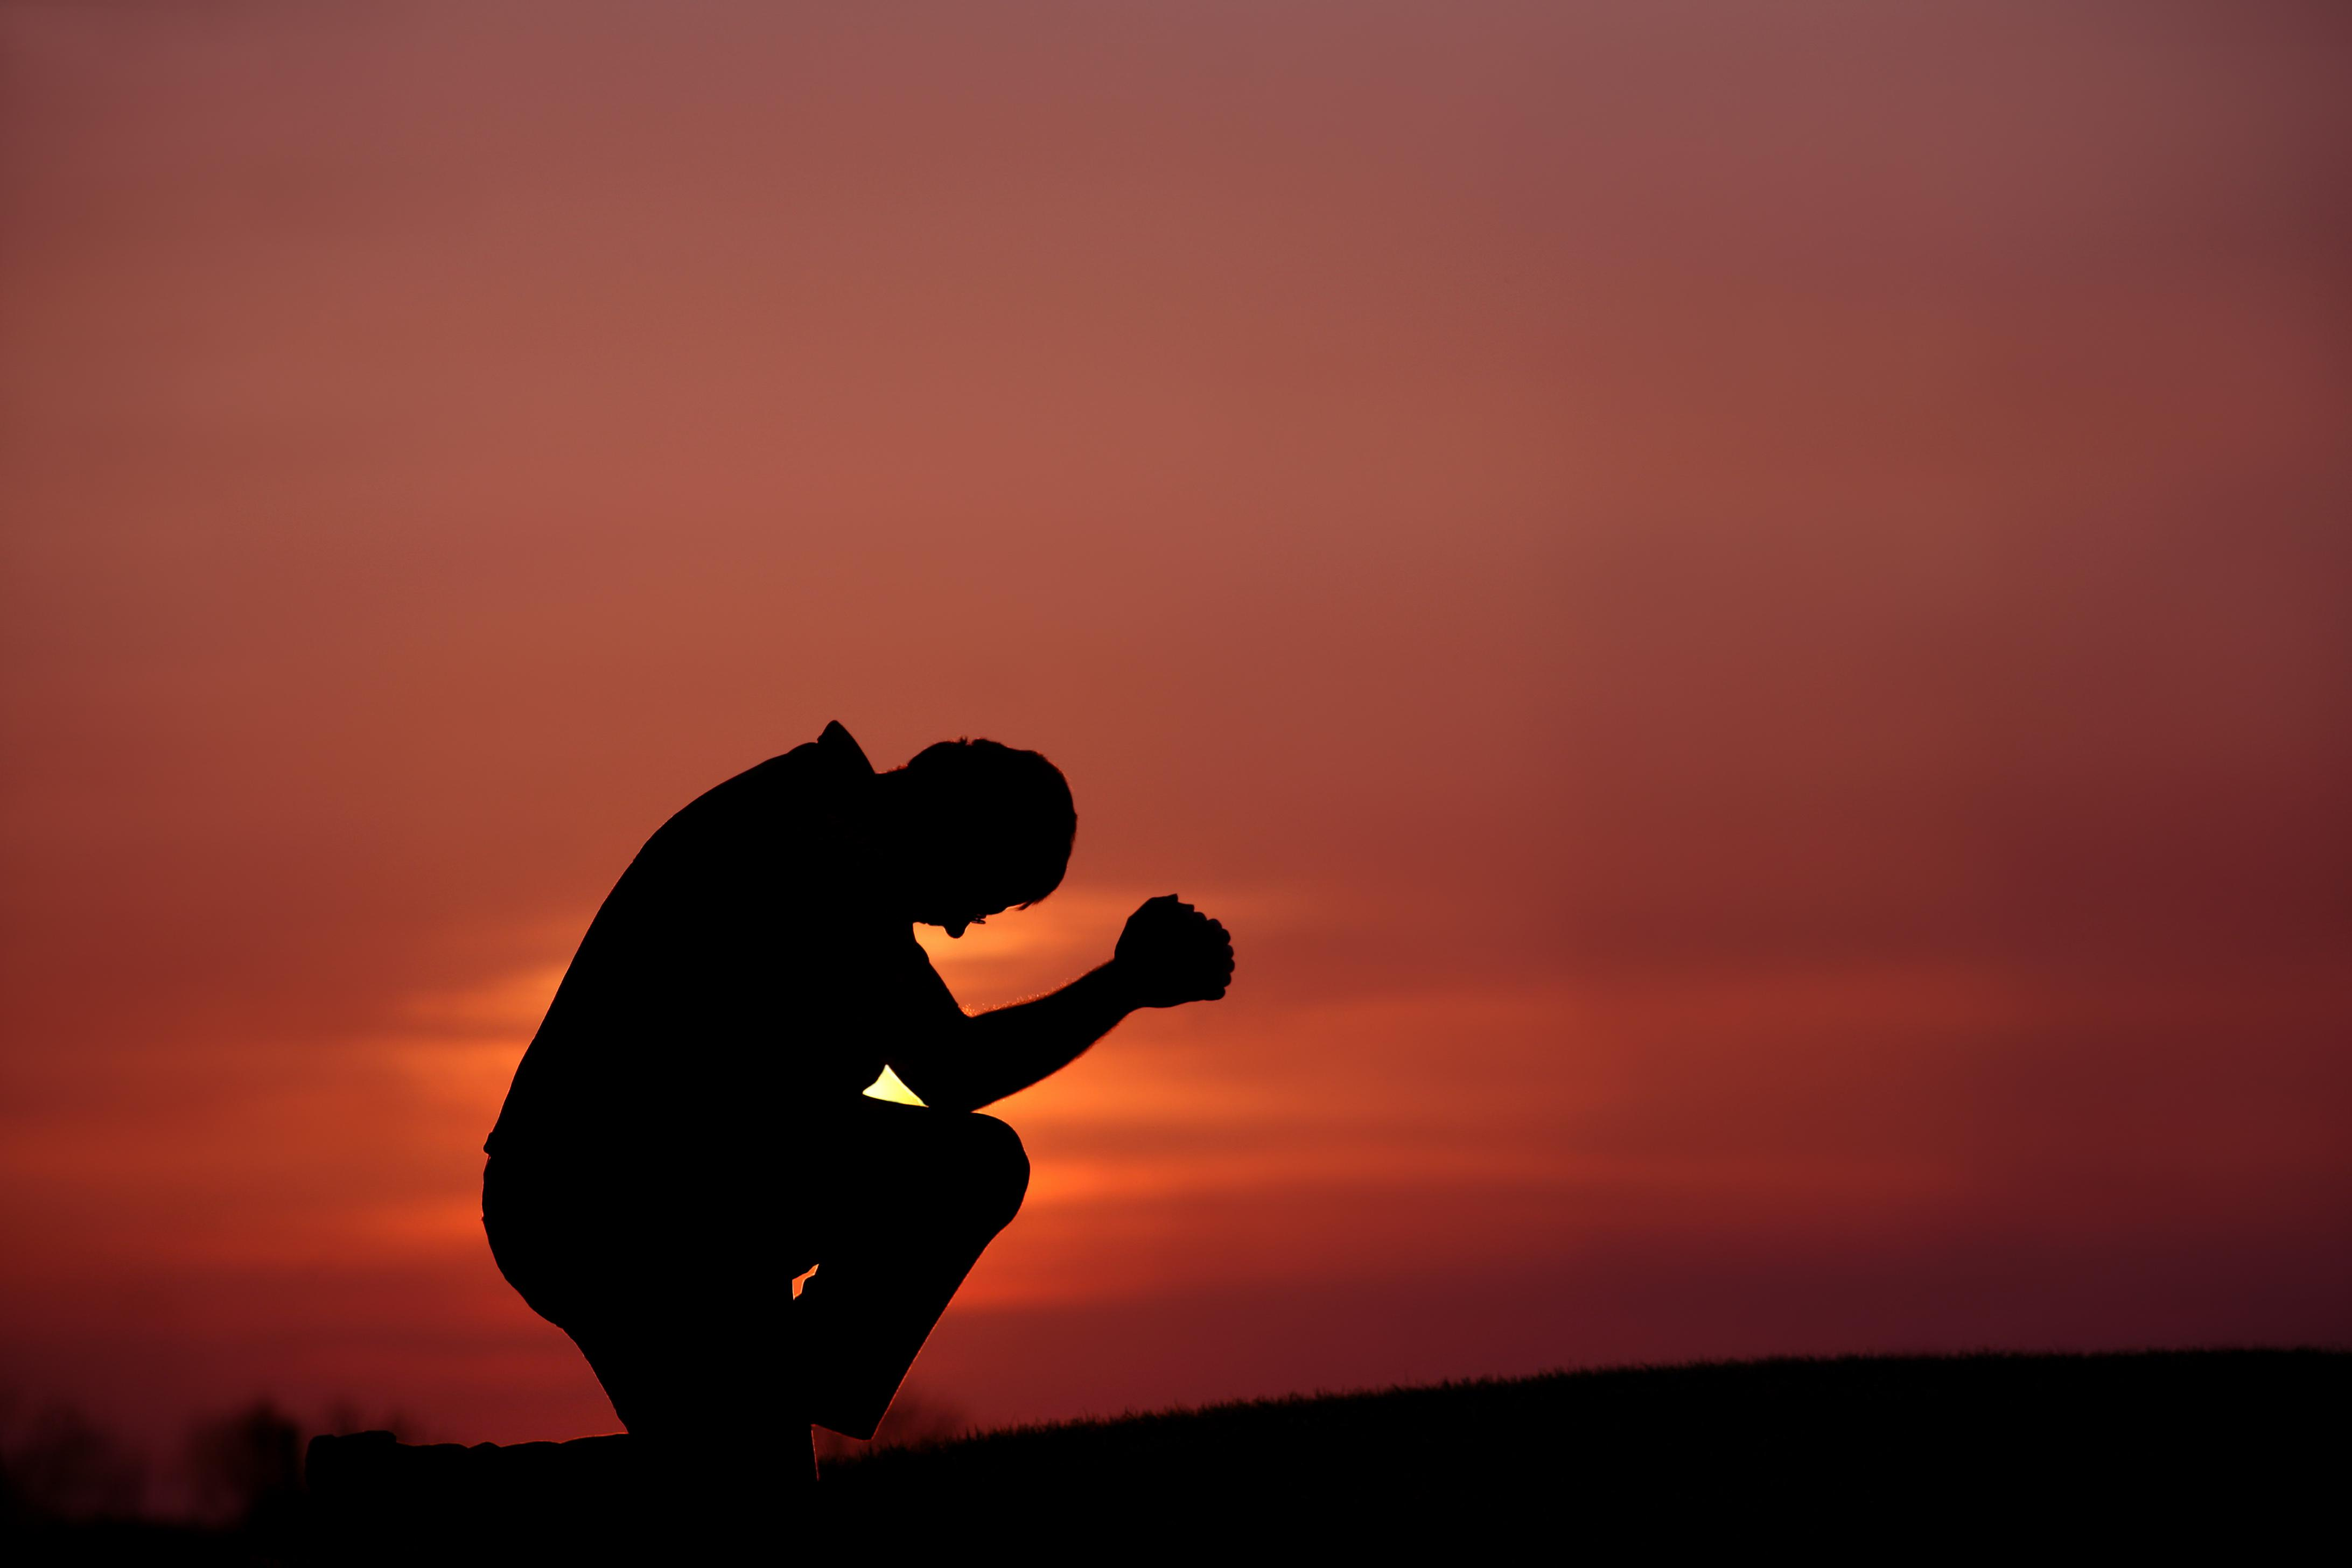 Silhouette of Man Praying at Dusk